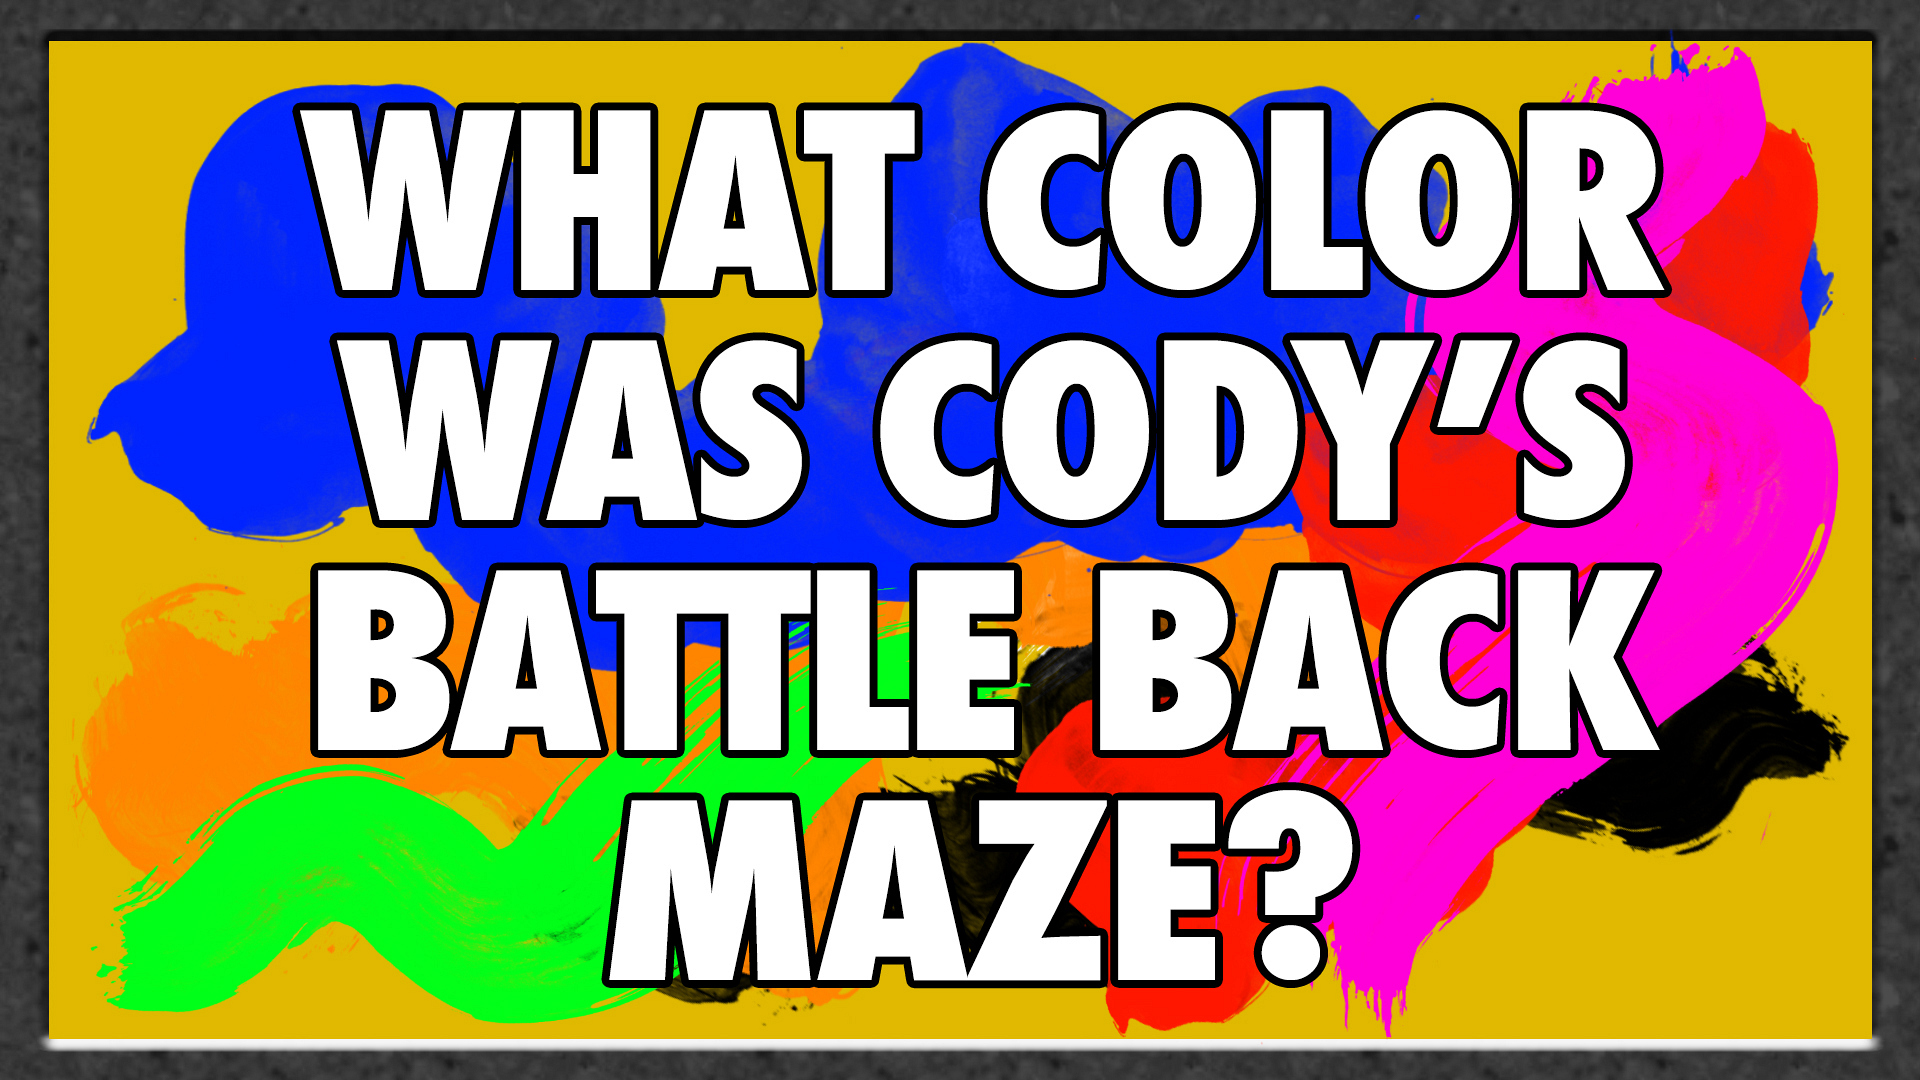 What color was Cody's Battle Back maze?